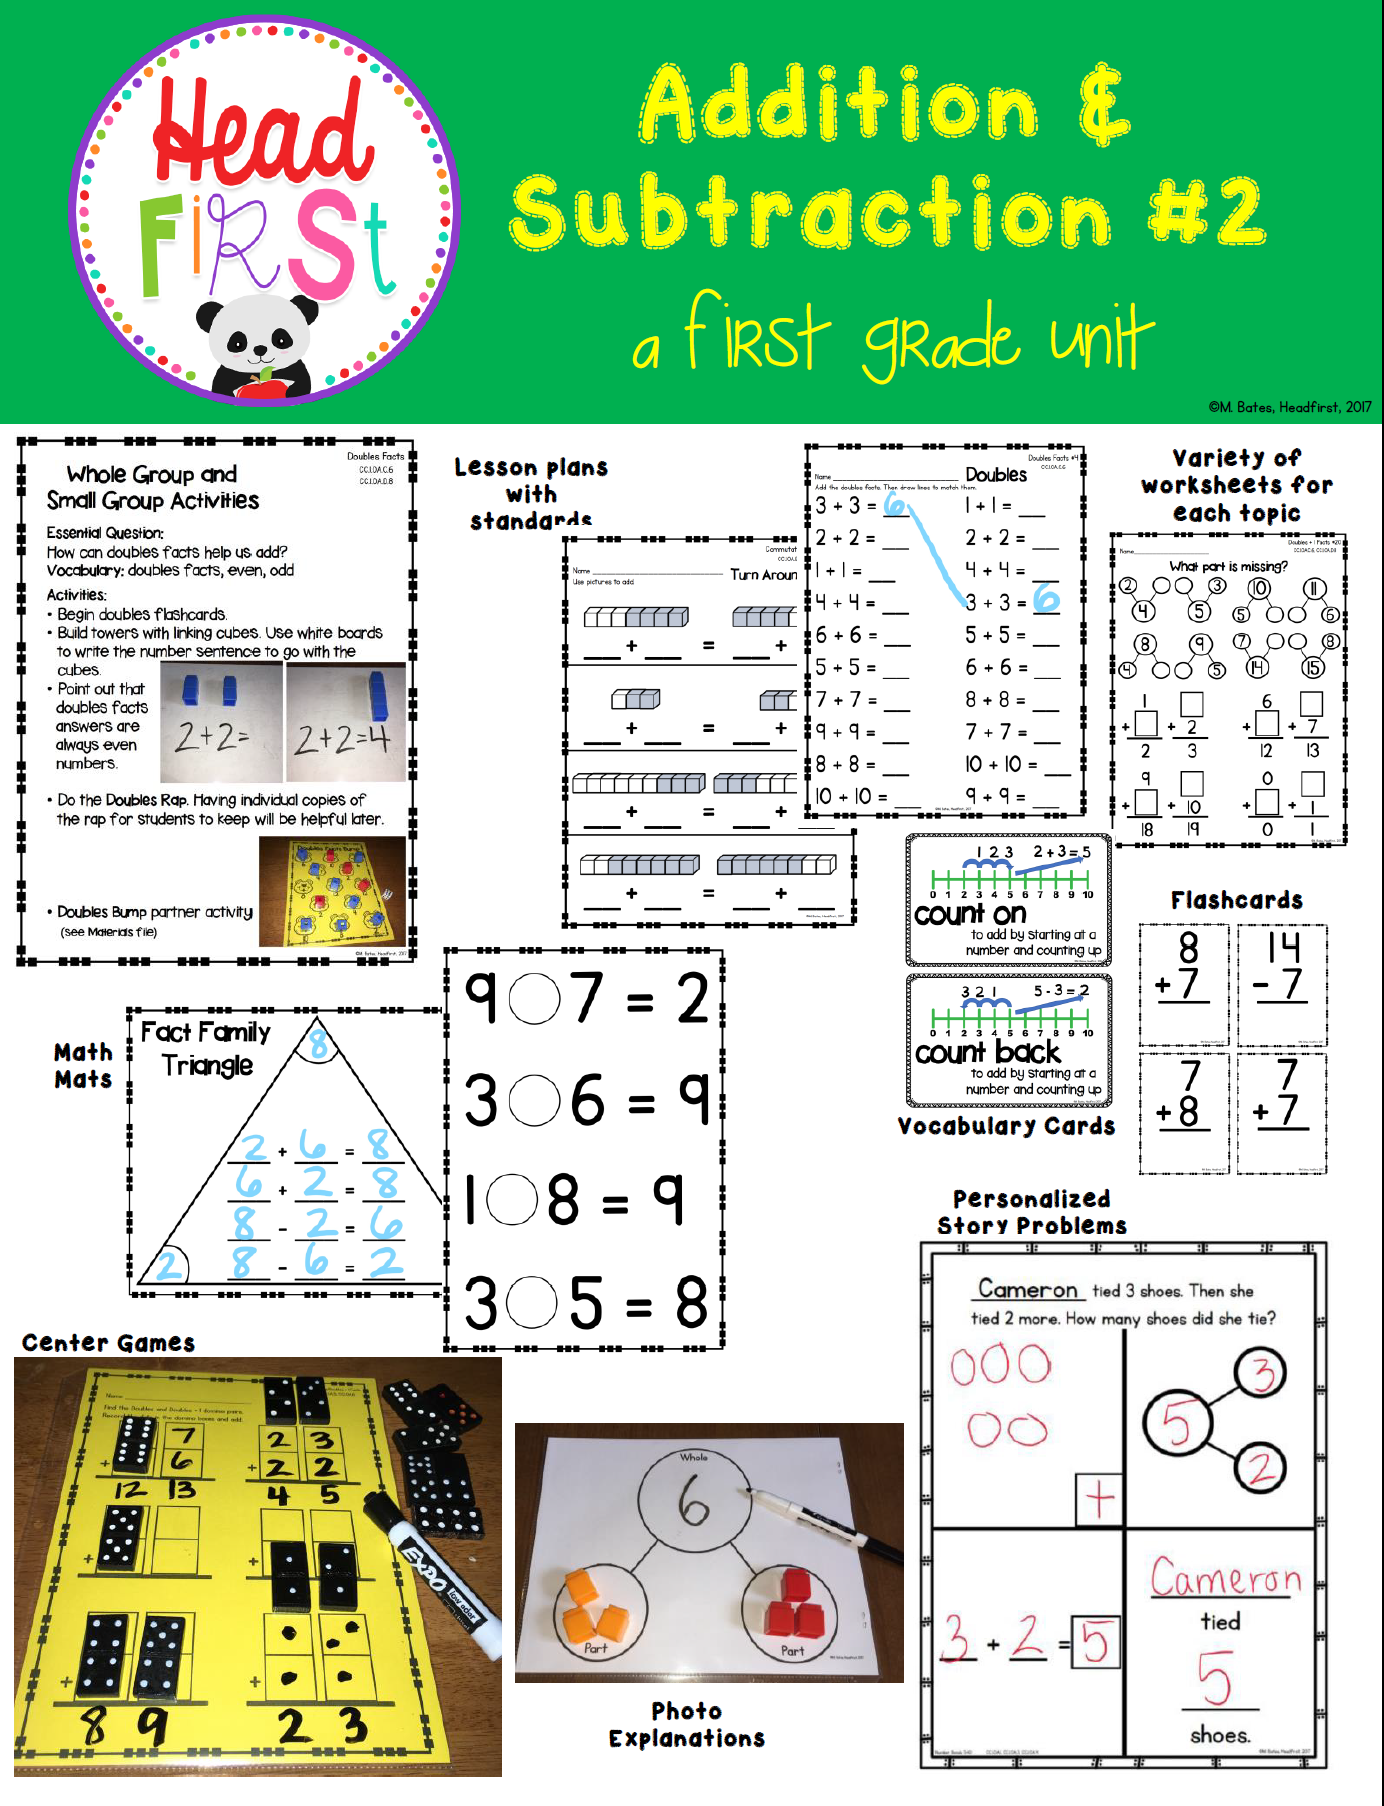 Addition And Subtraction Fact Families Doubles Facts For